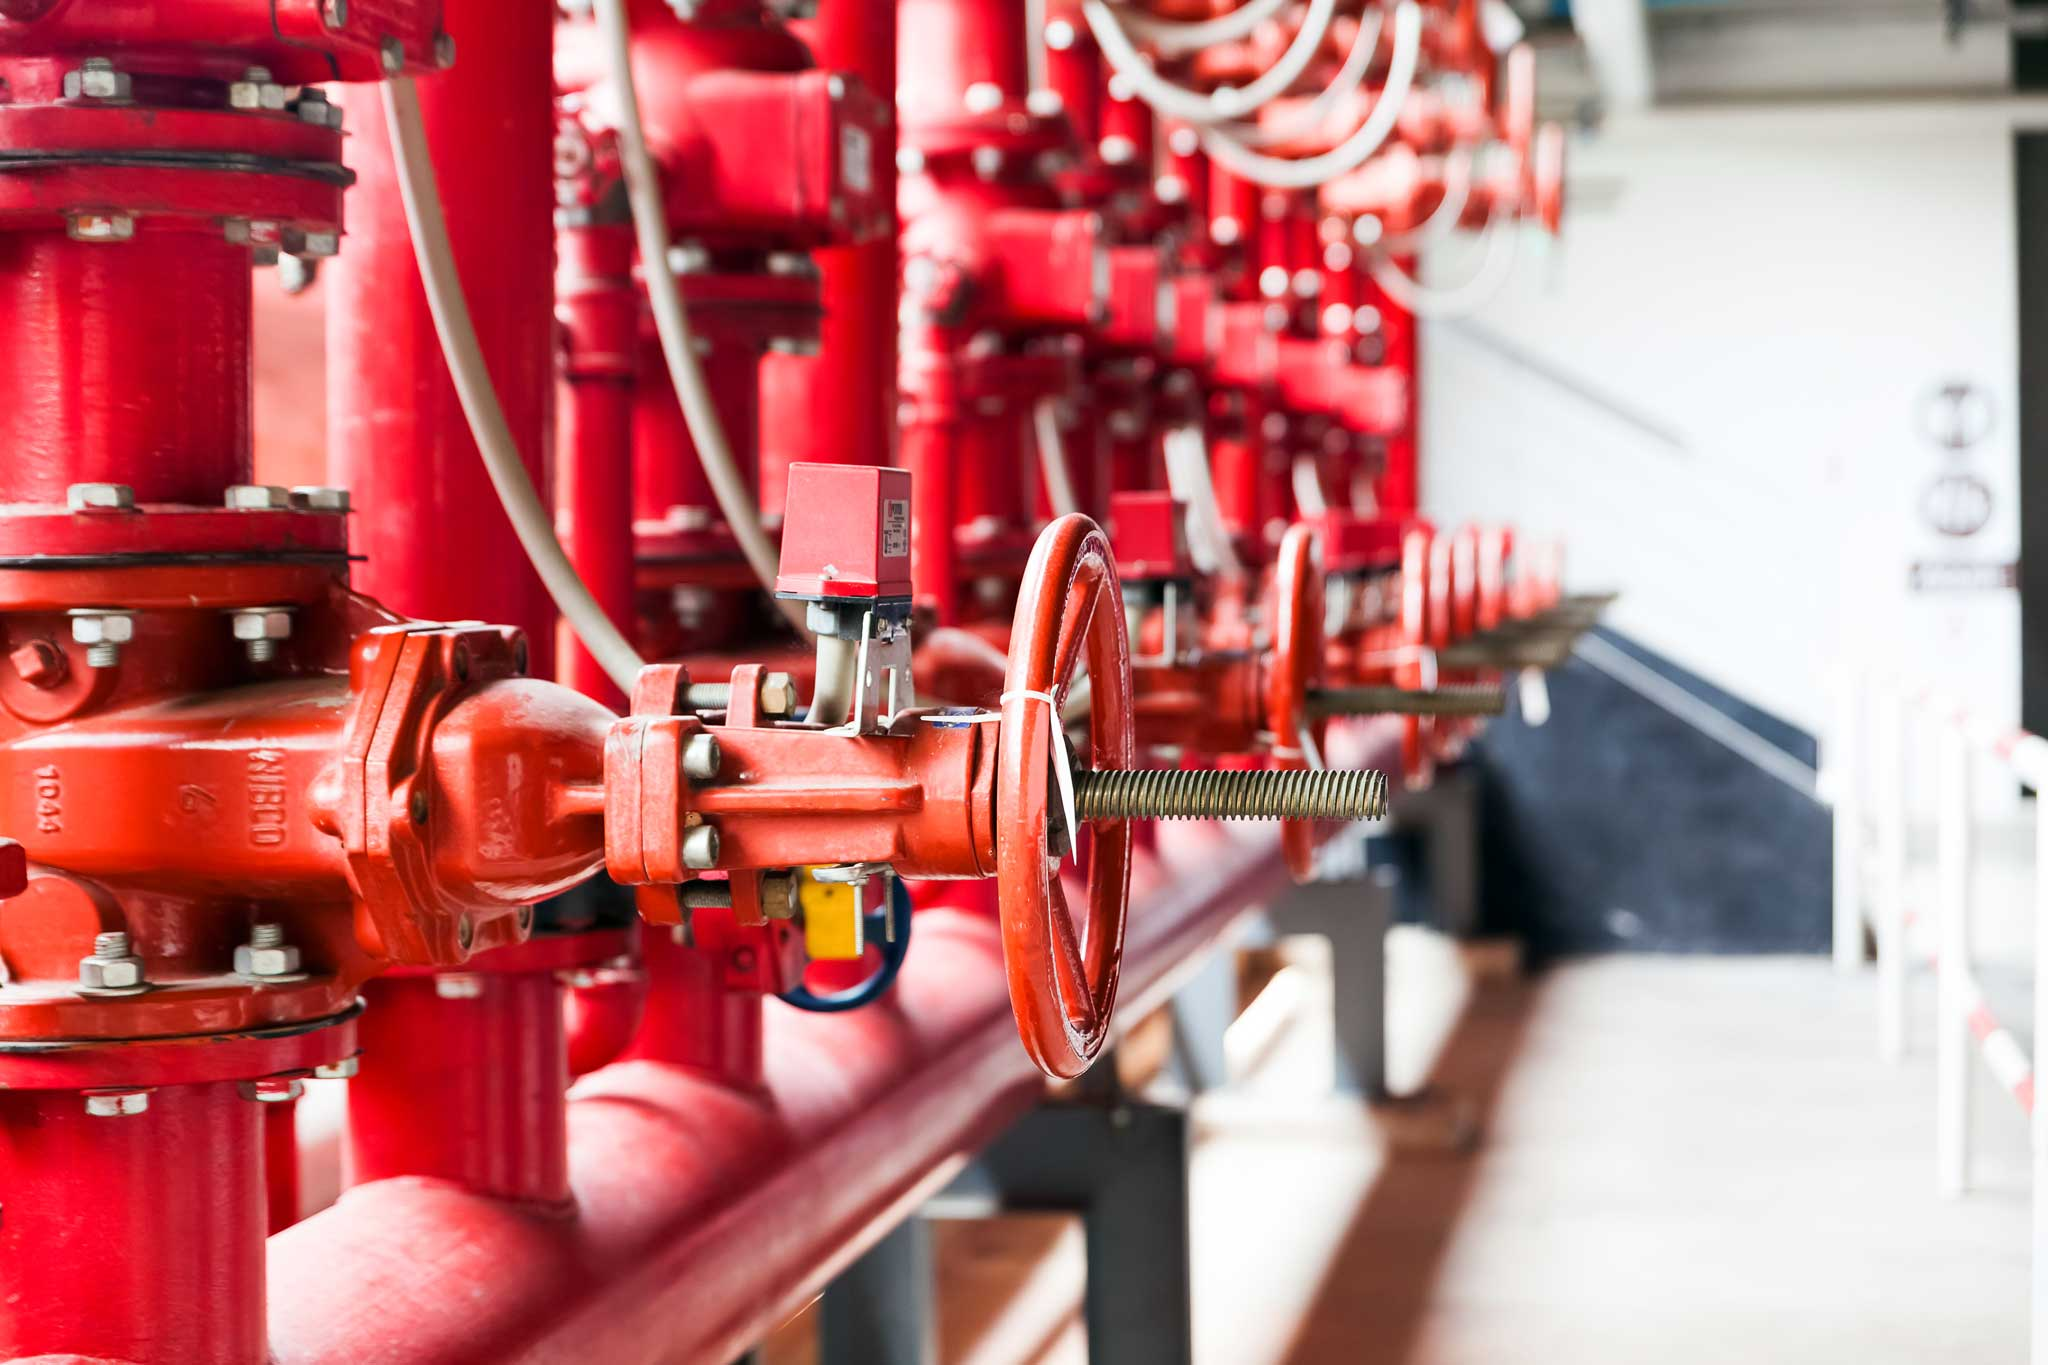 Fire Sprinkler systems look complicated but follow a few simple factors.